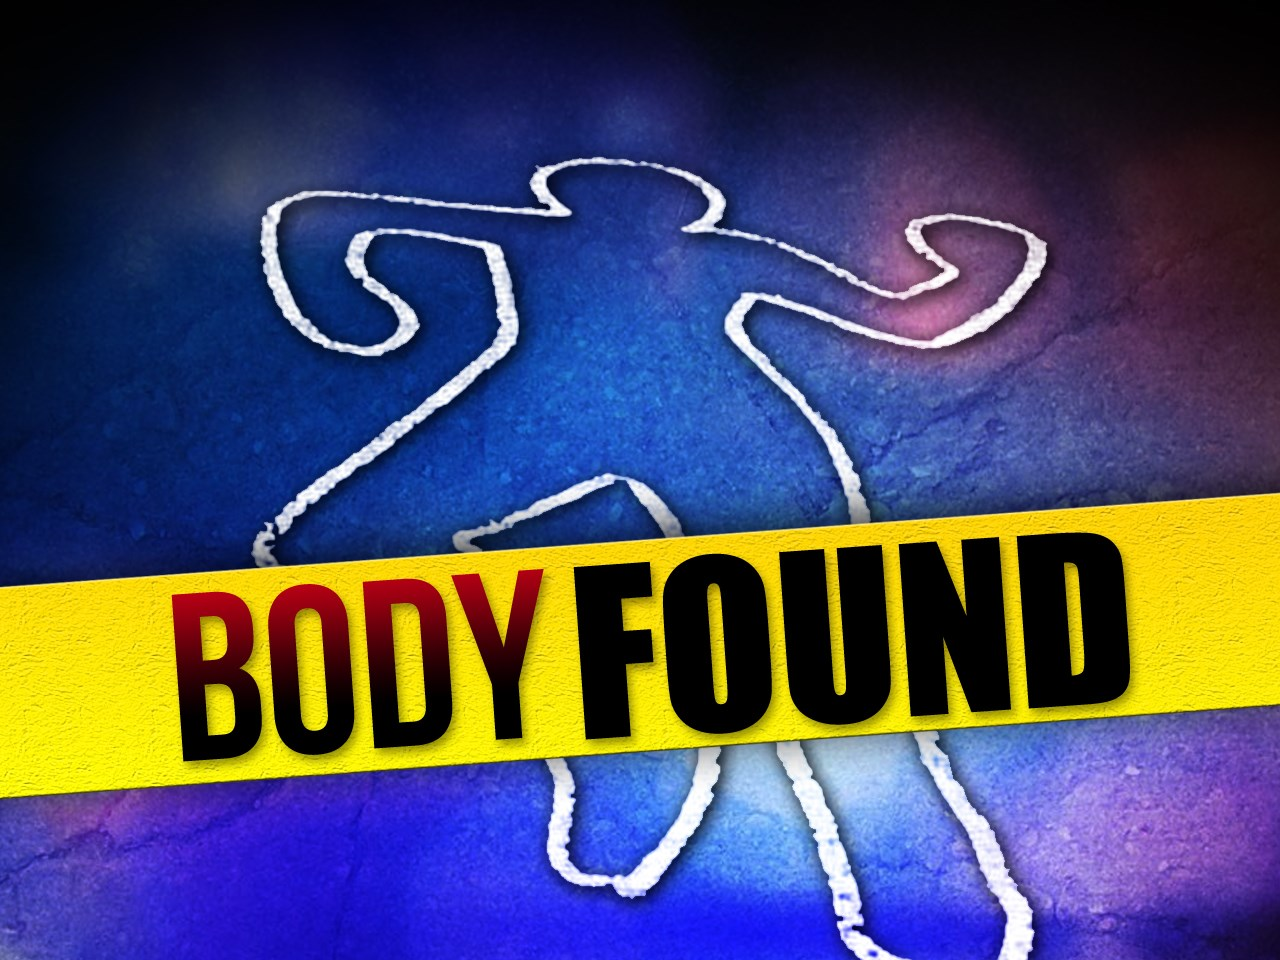 body found in yankton